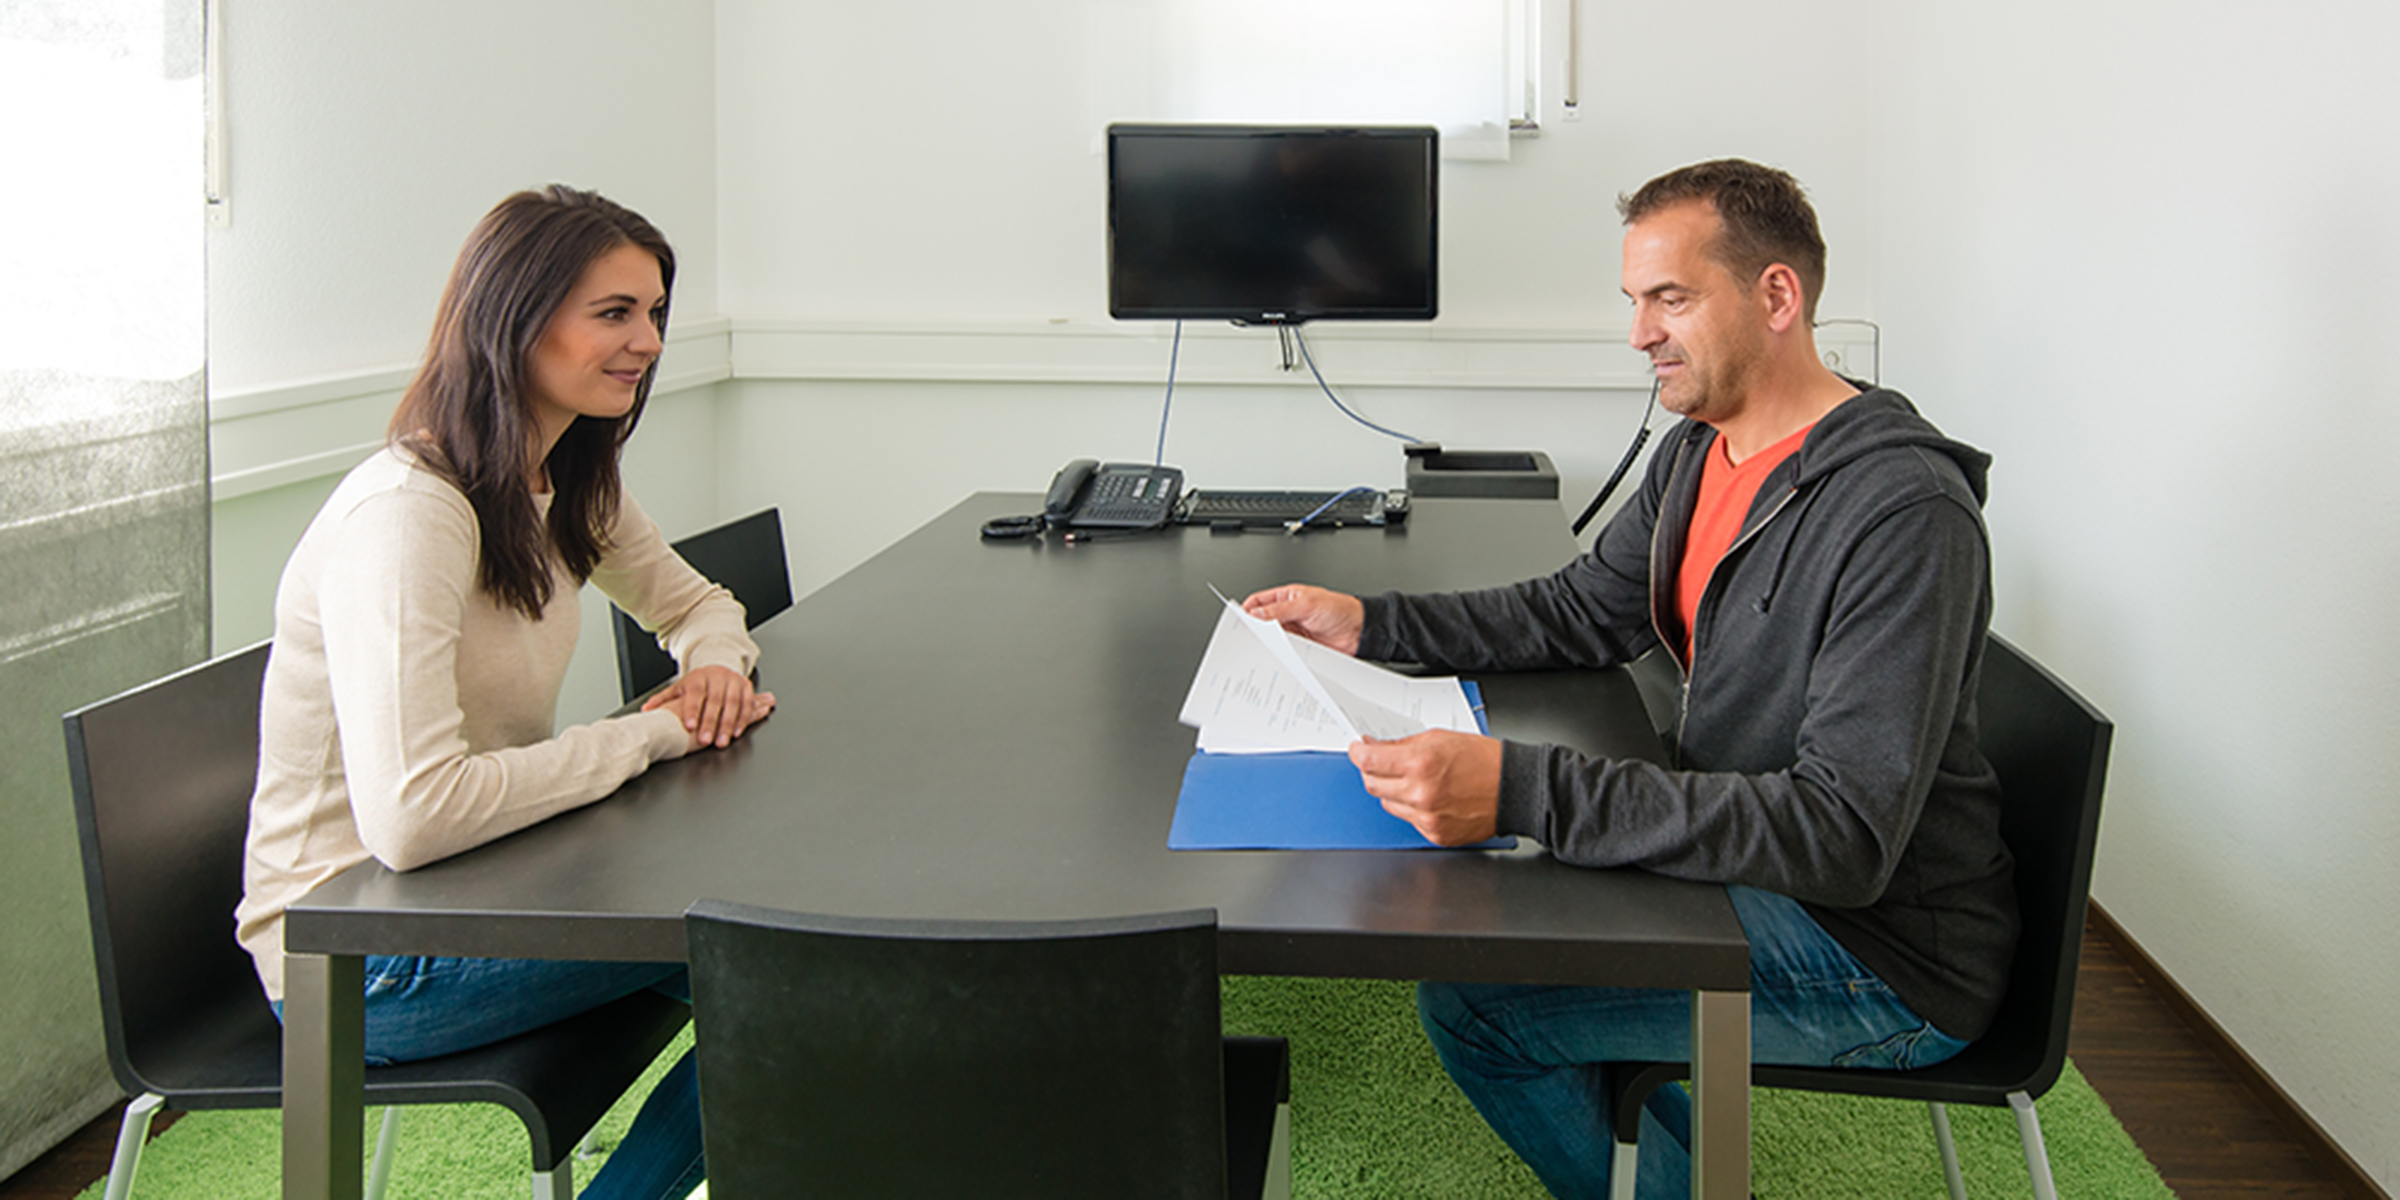 A picture from a job interview